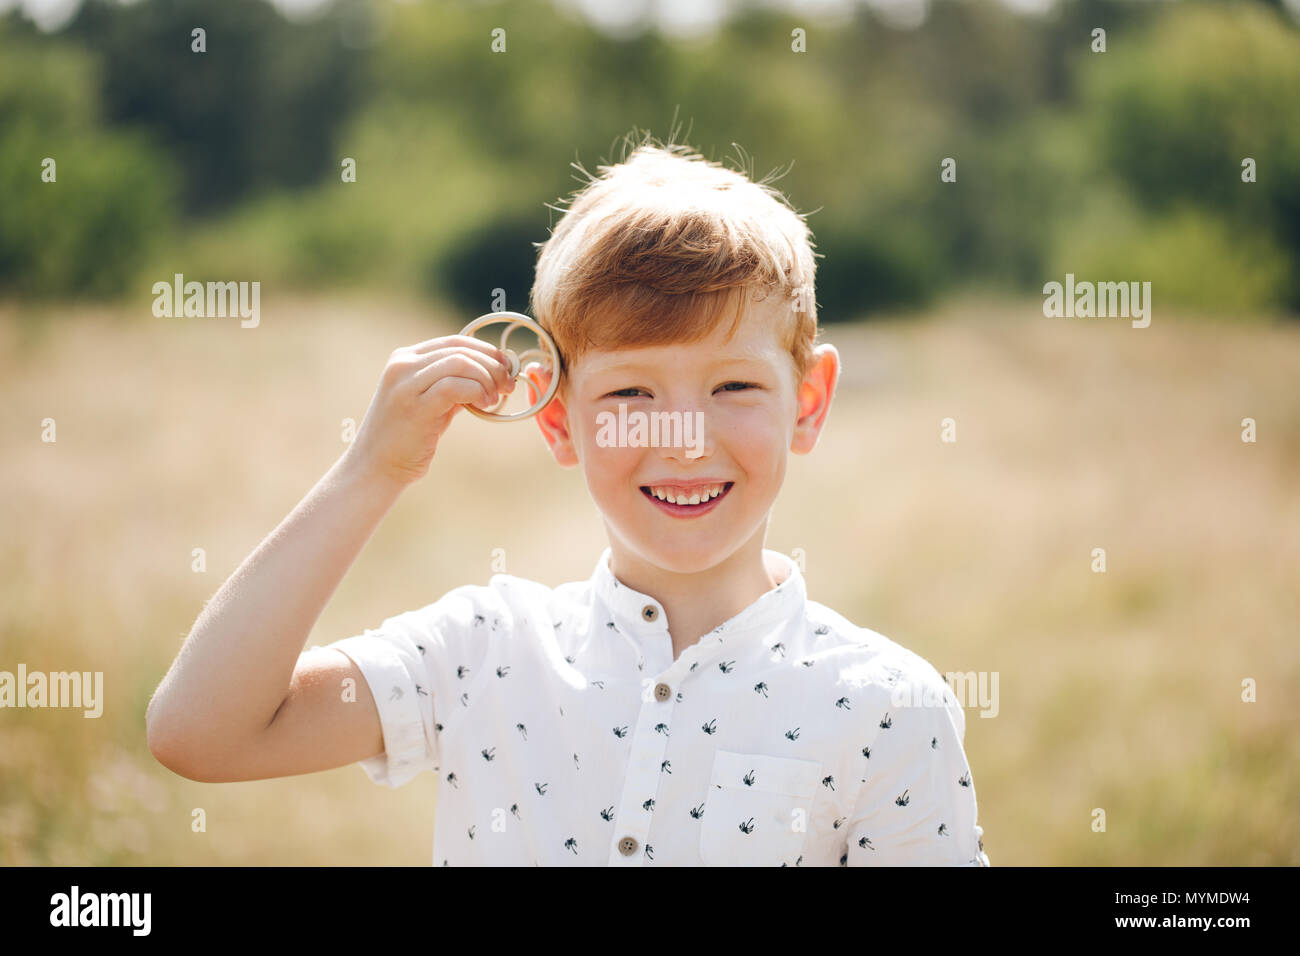 6 years old boy playing with spinner - Stock Image